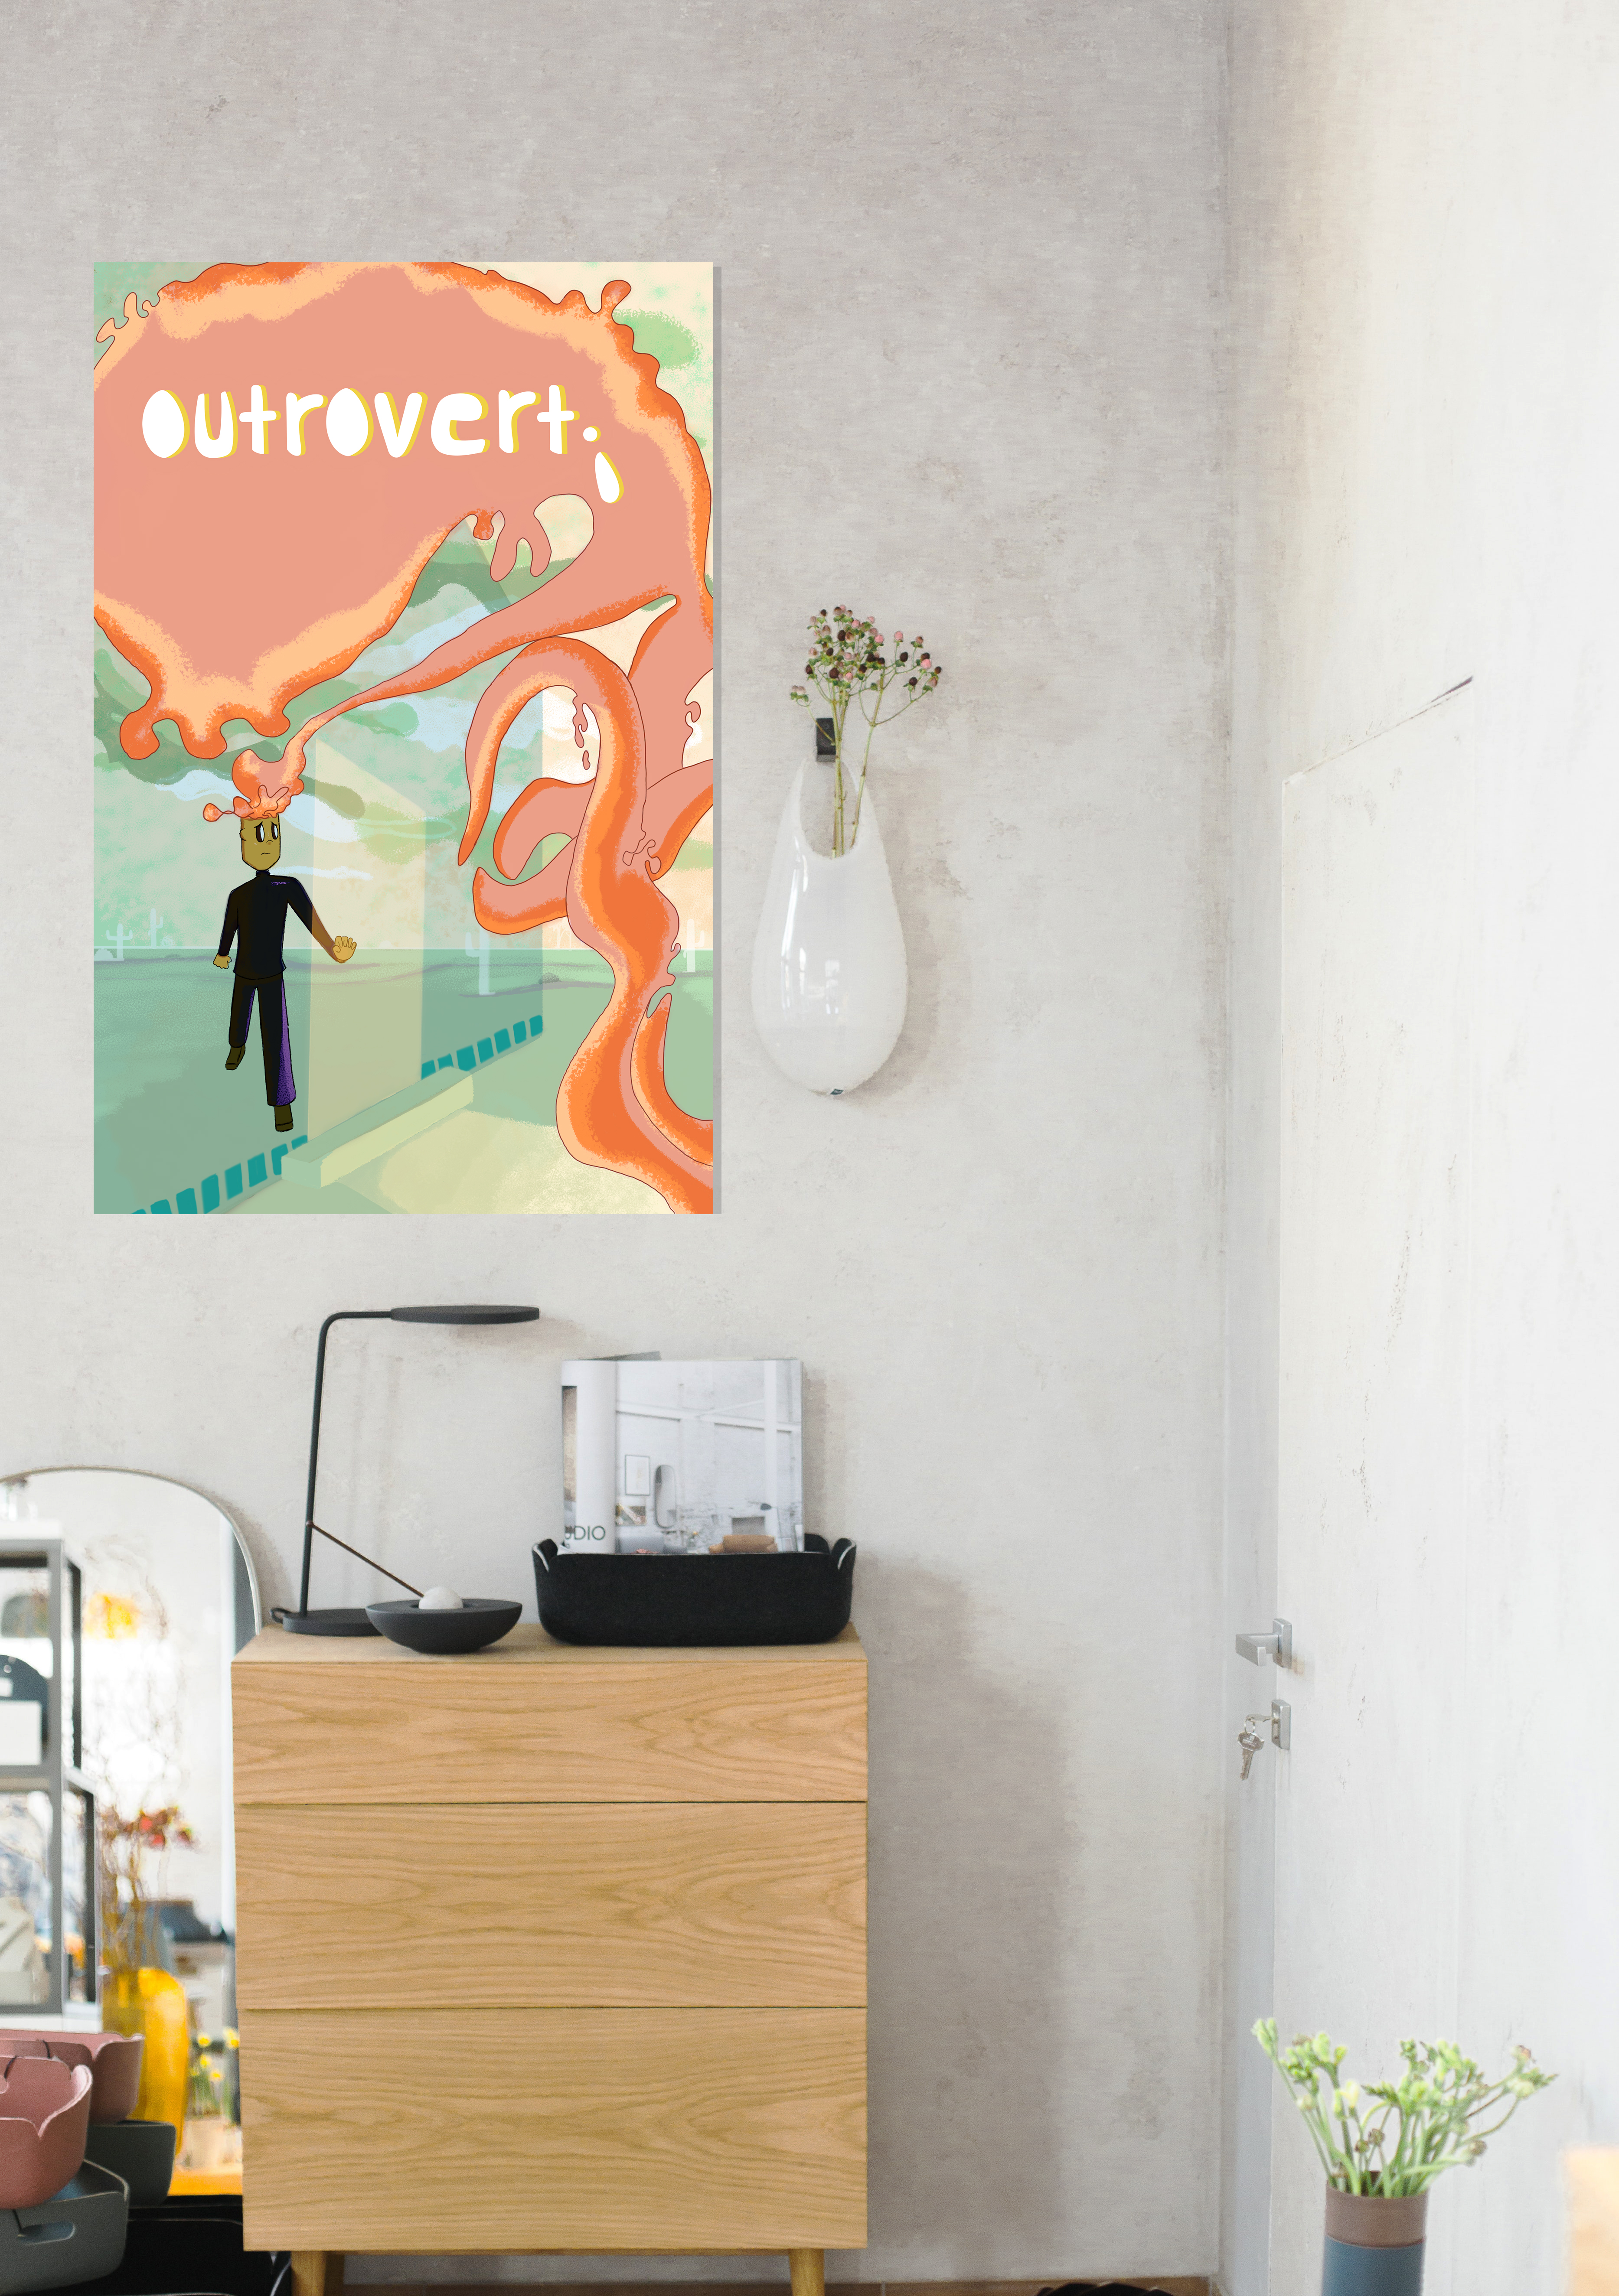 Outrovert Poster Mockup